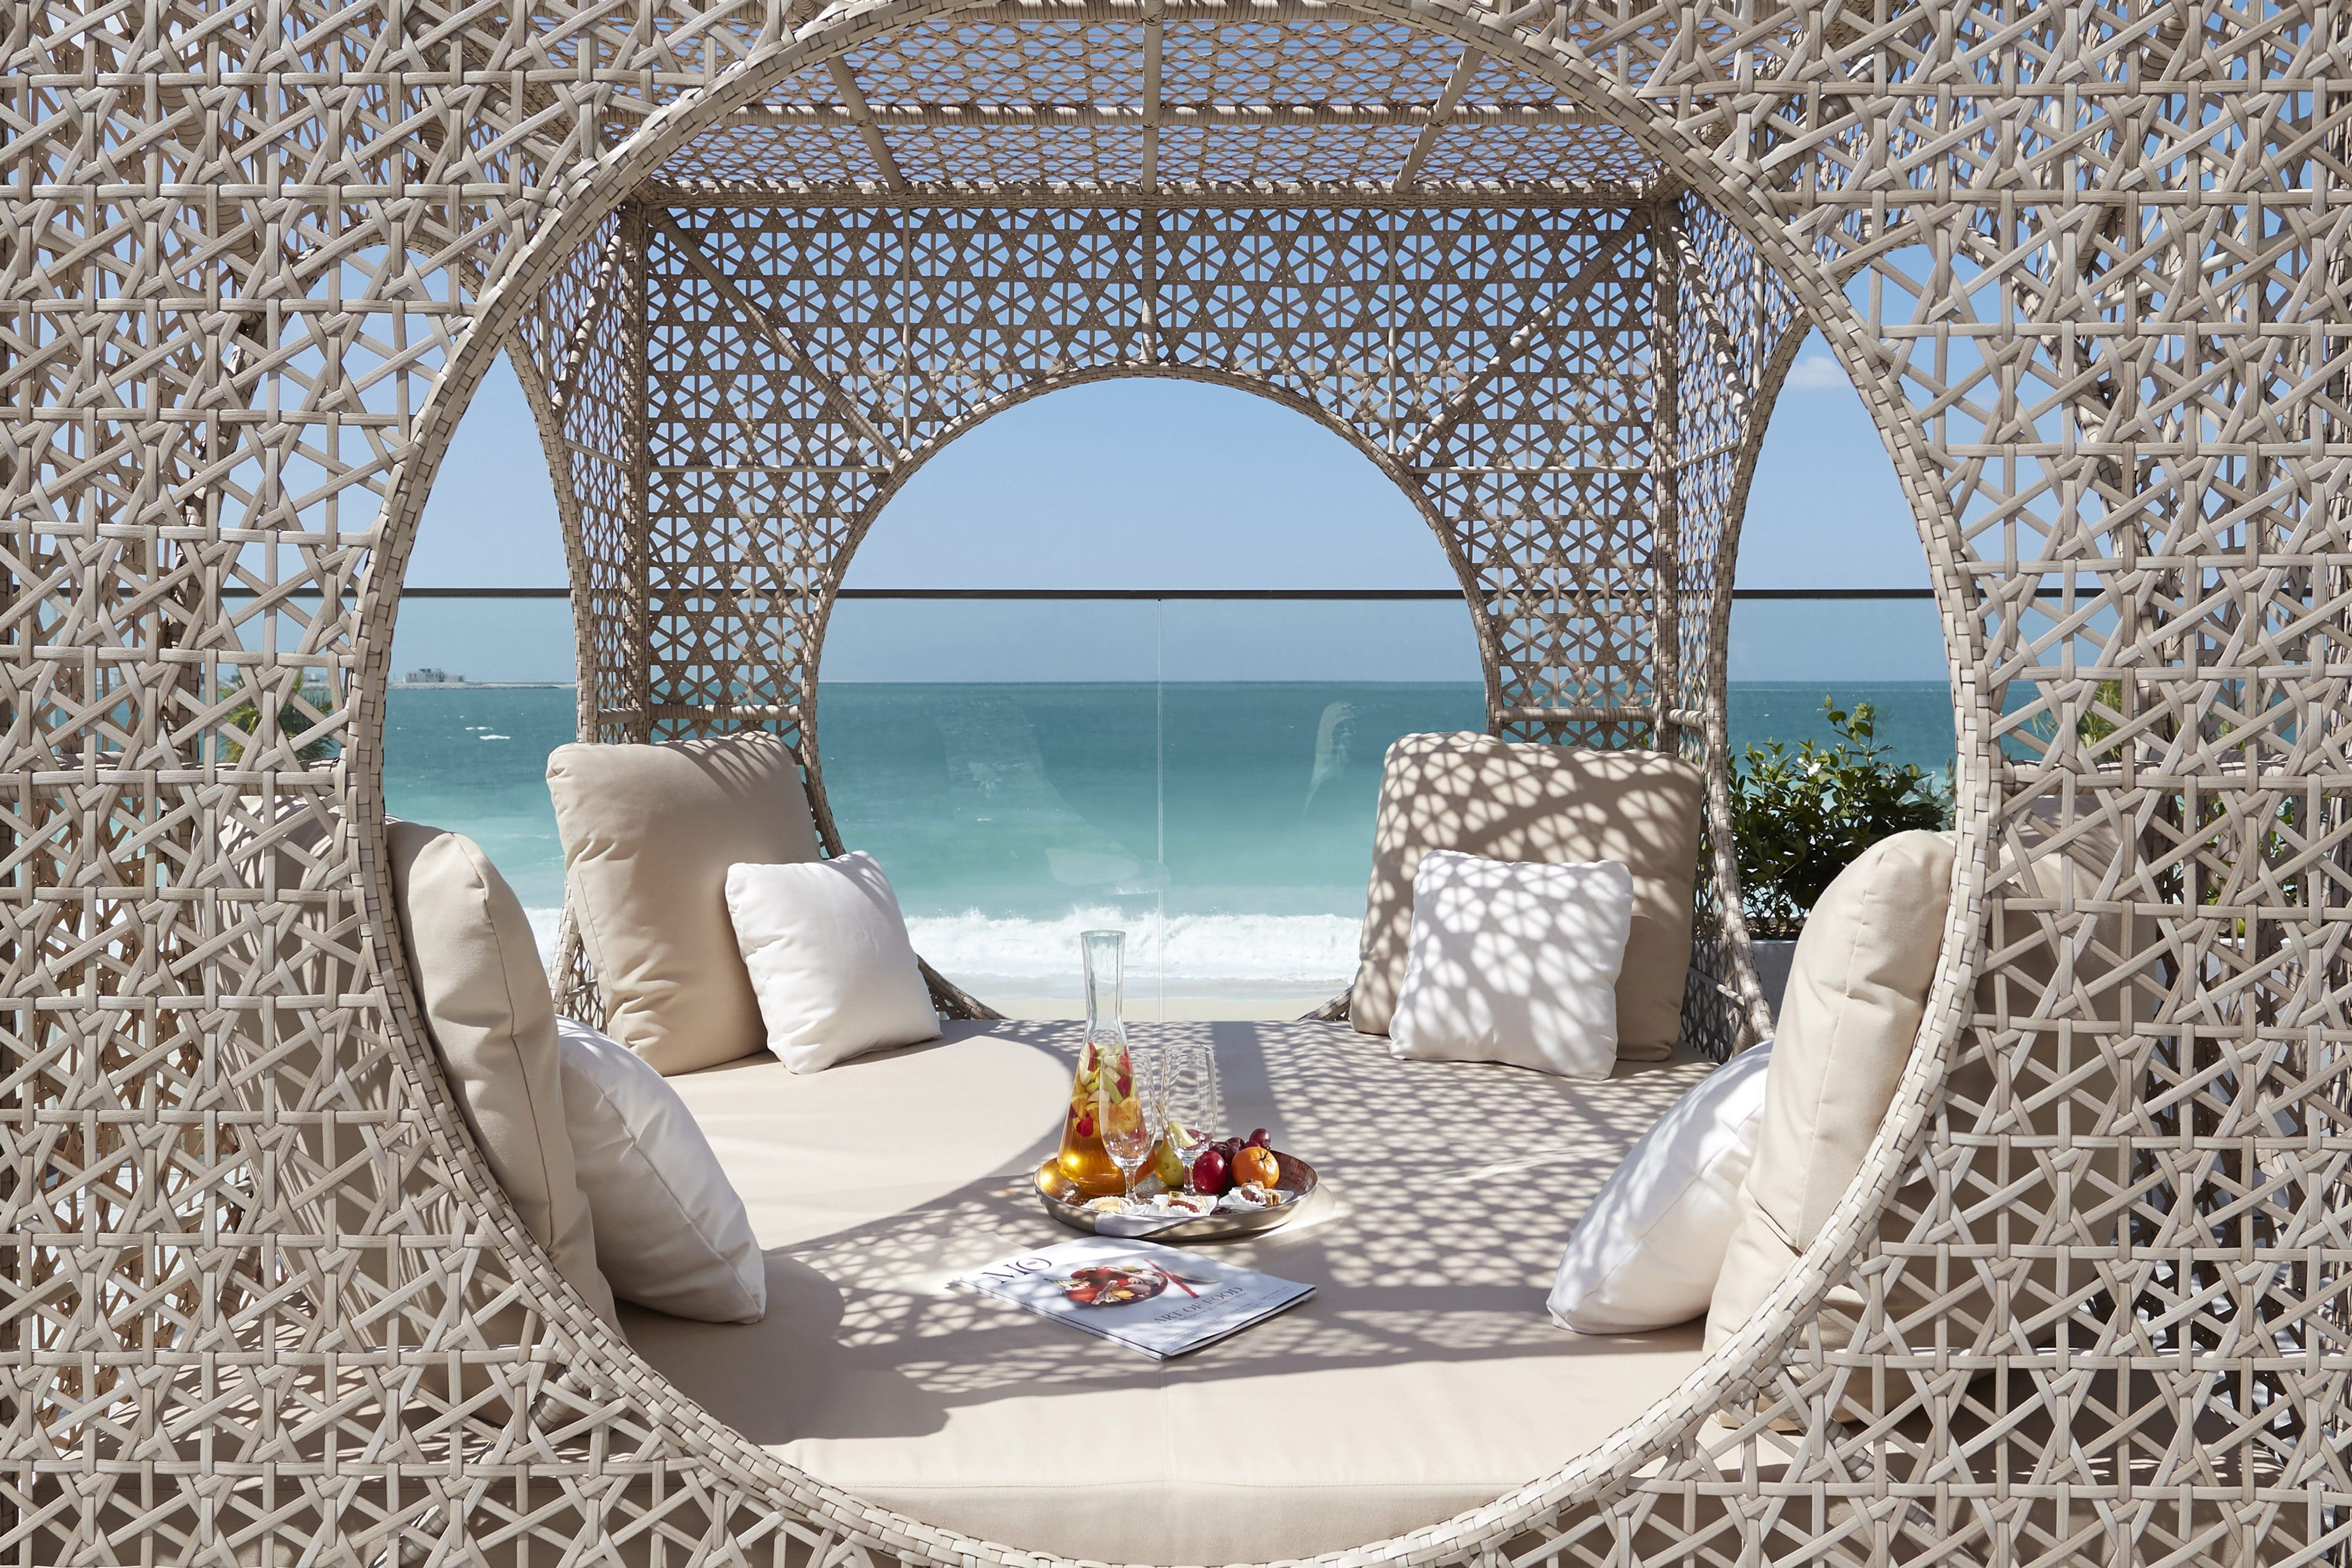 Fruit and water on a plush daybed with views of the Arabian Sea in the background